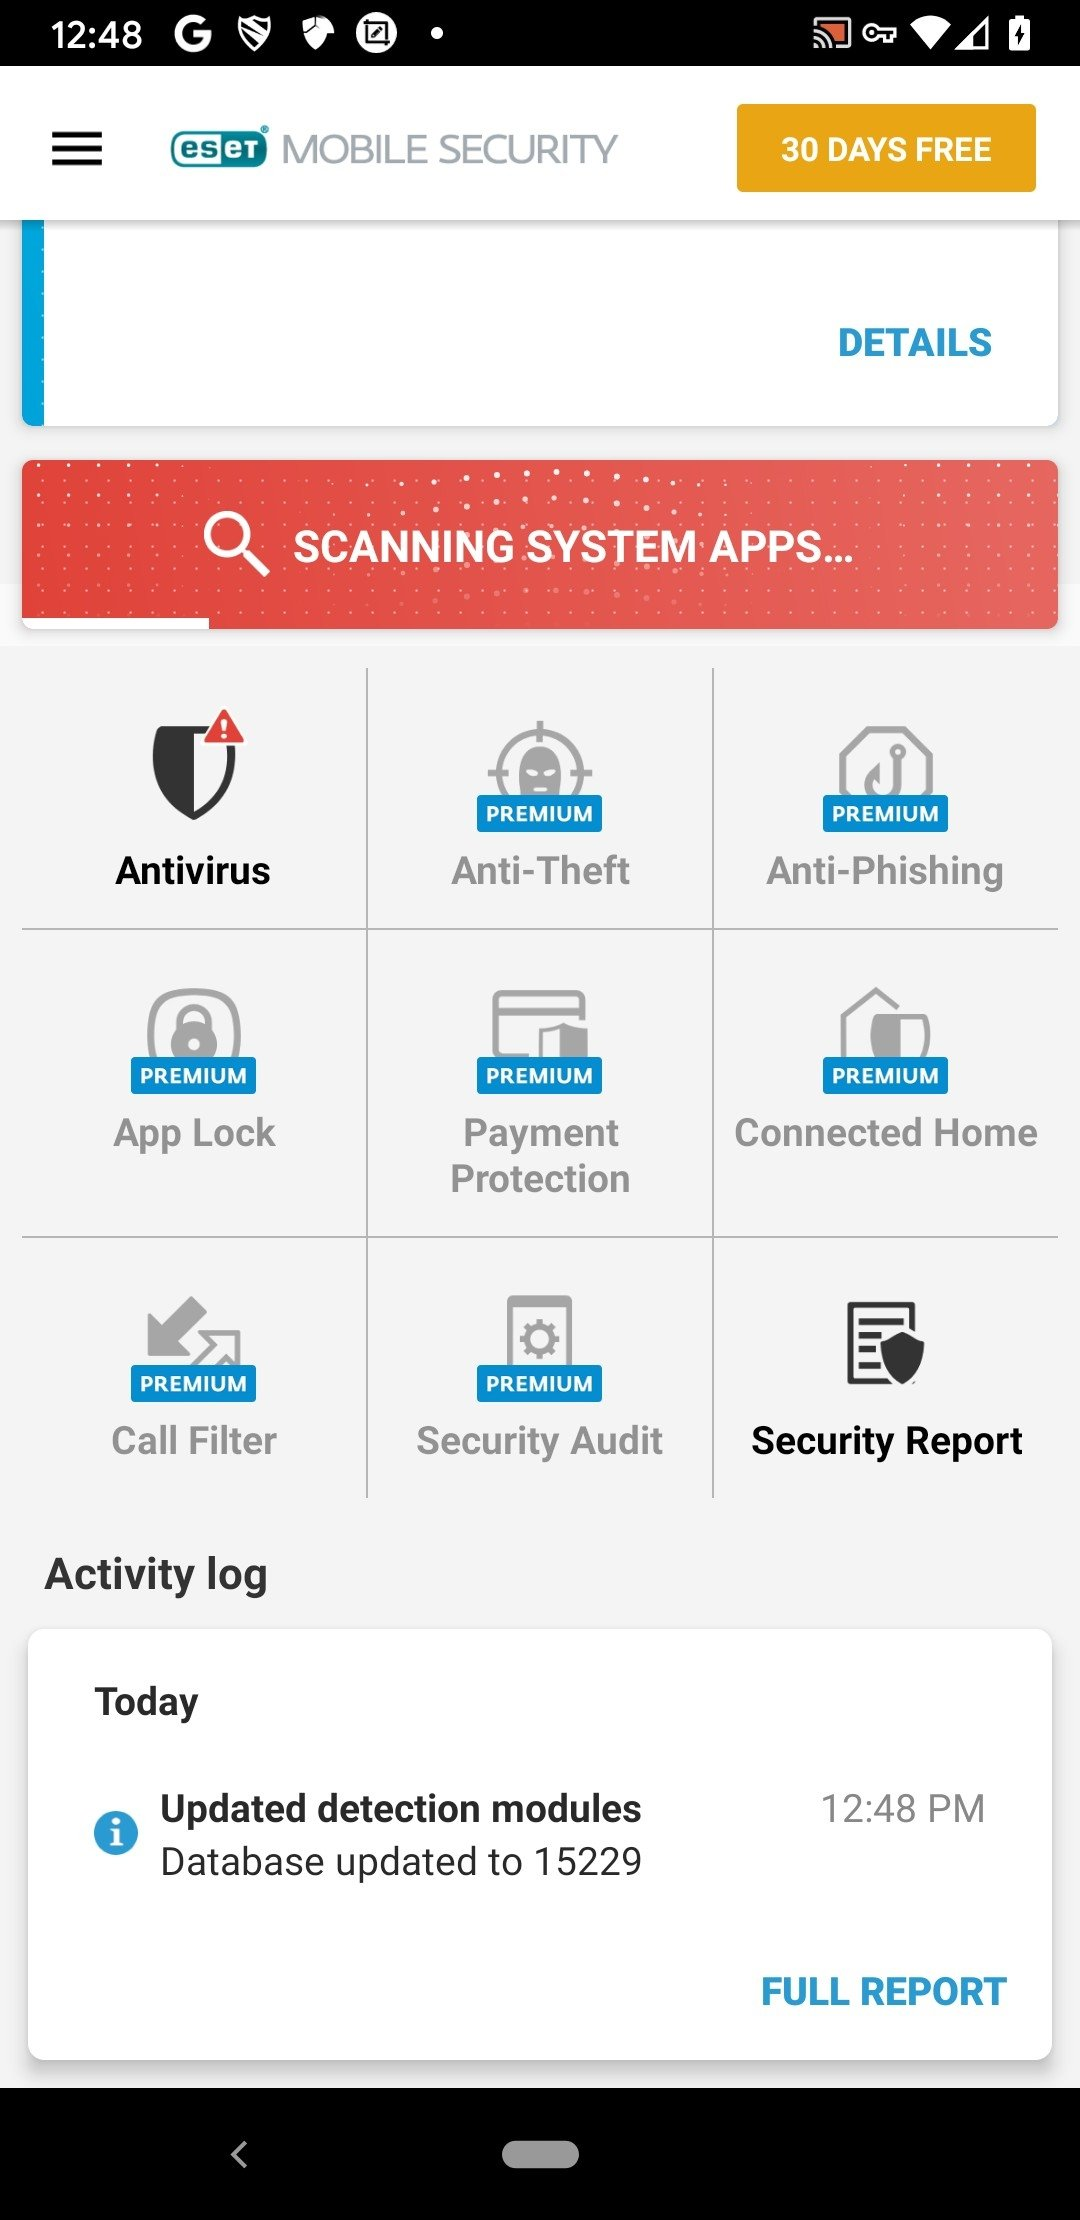 ESET Mobile Security 5 1 25 0 - Download for Android APK Free